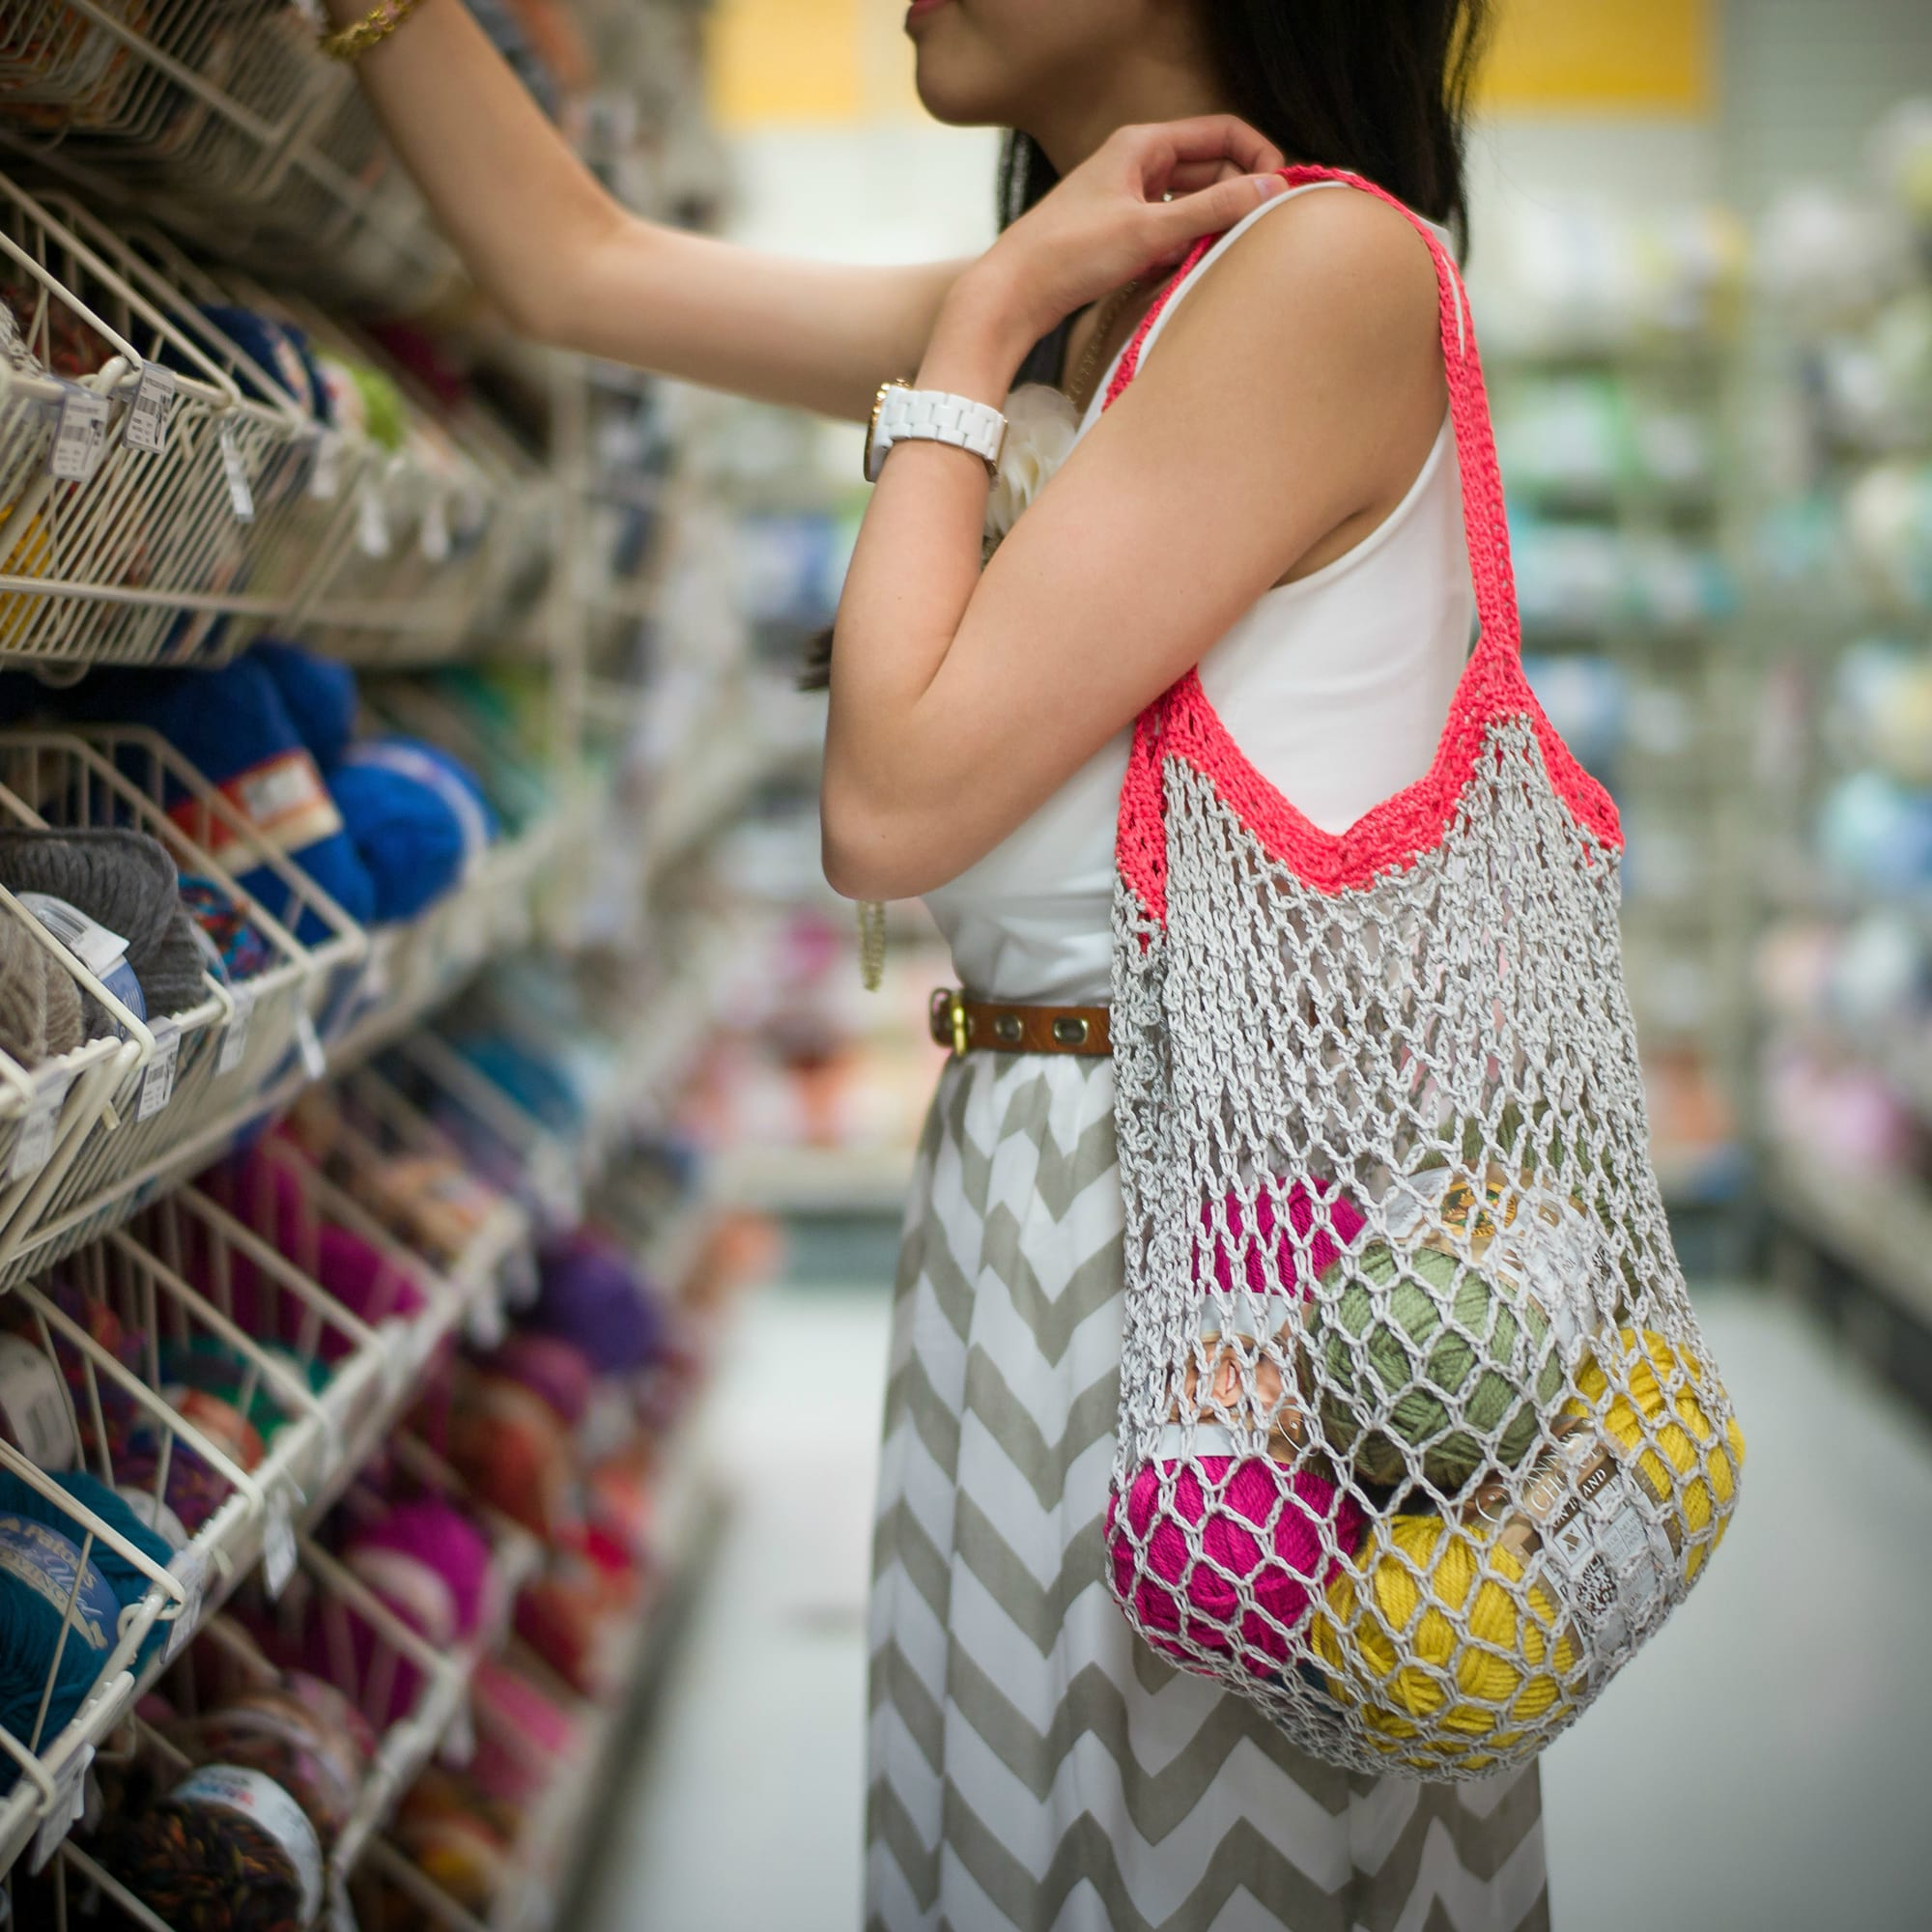 Crochet Mesh Bag All About Ami